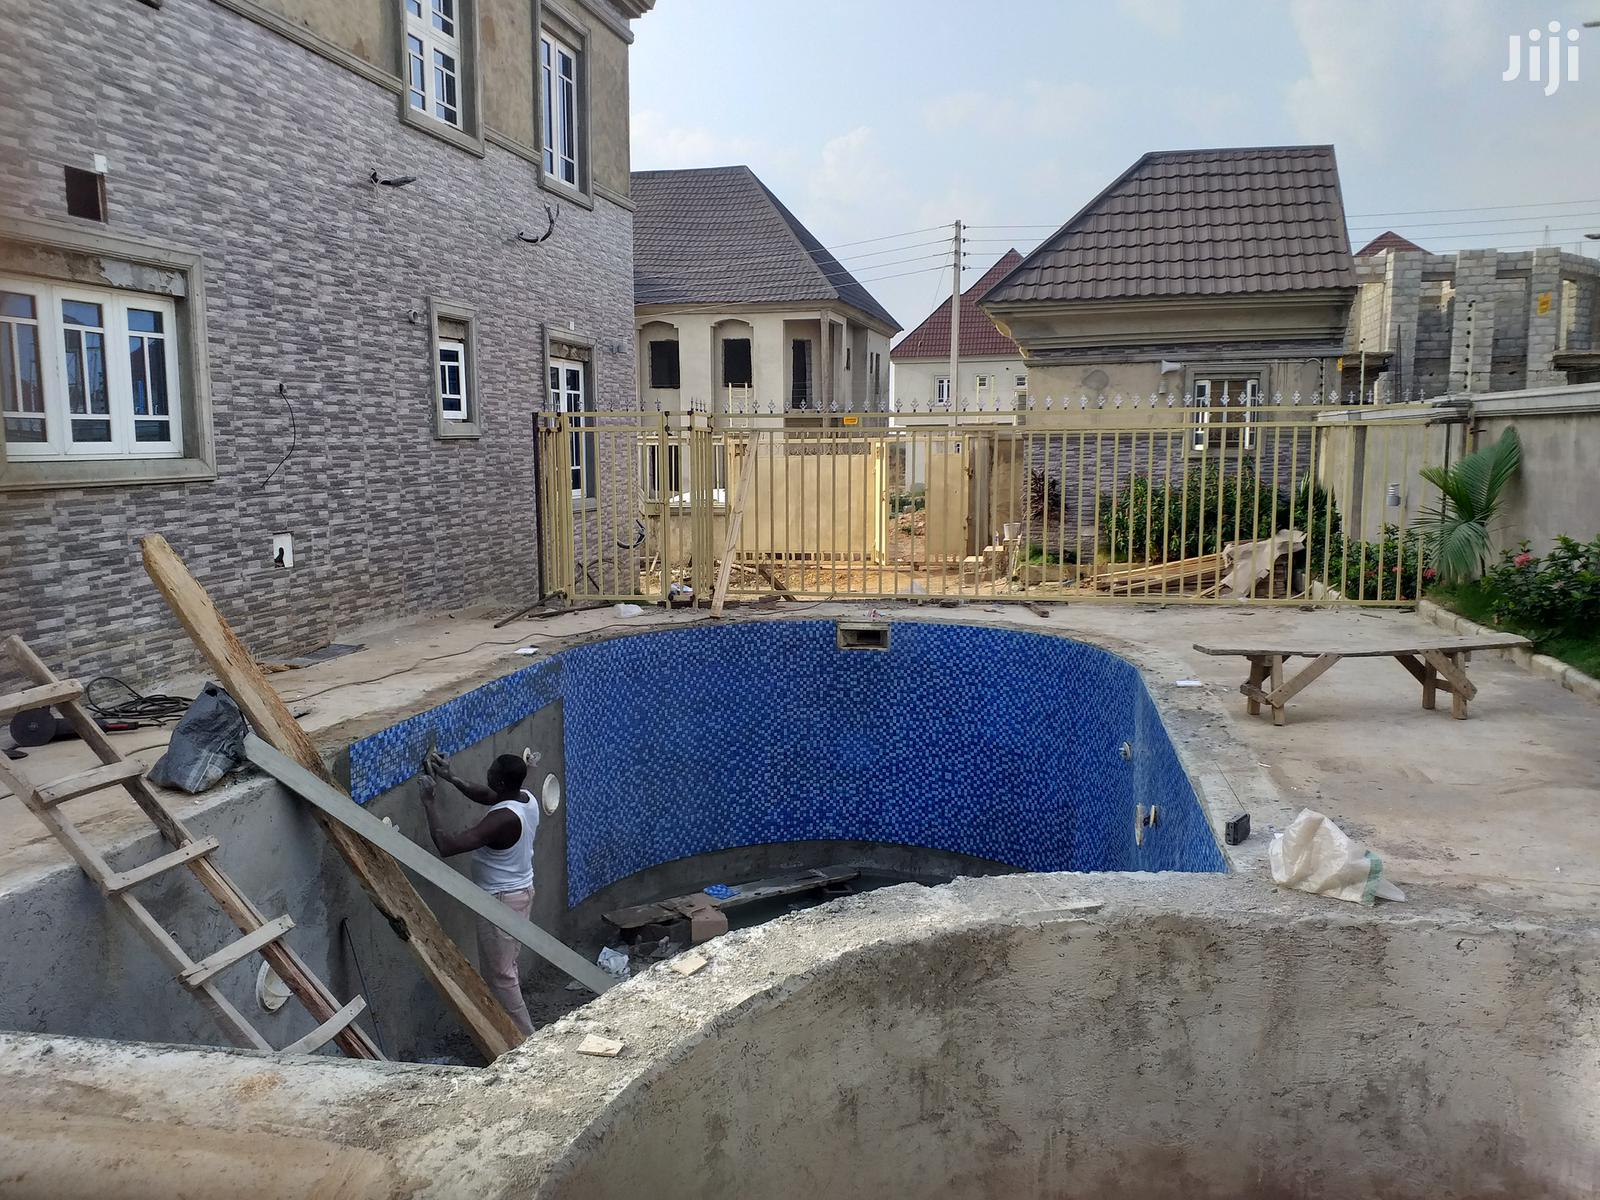 Swimming Pool Construction | Building & Trades Services for sale in Kubwa, Abuja (FCT) State, Nigeria